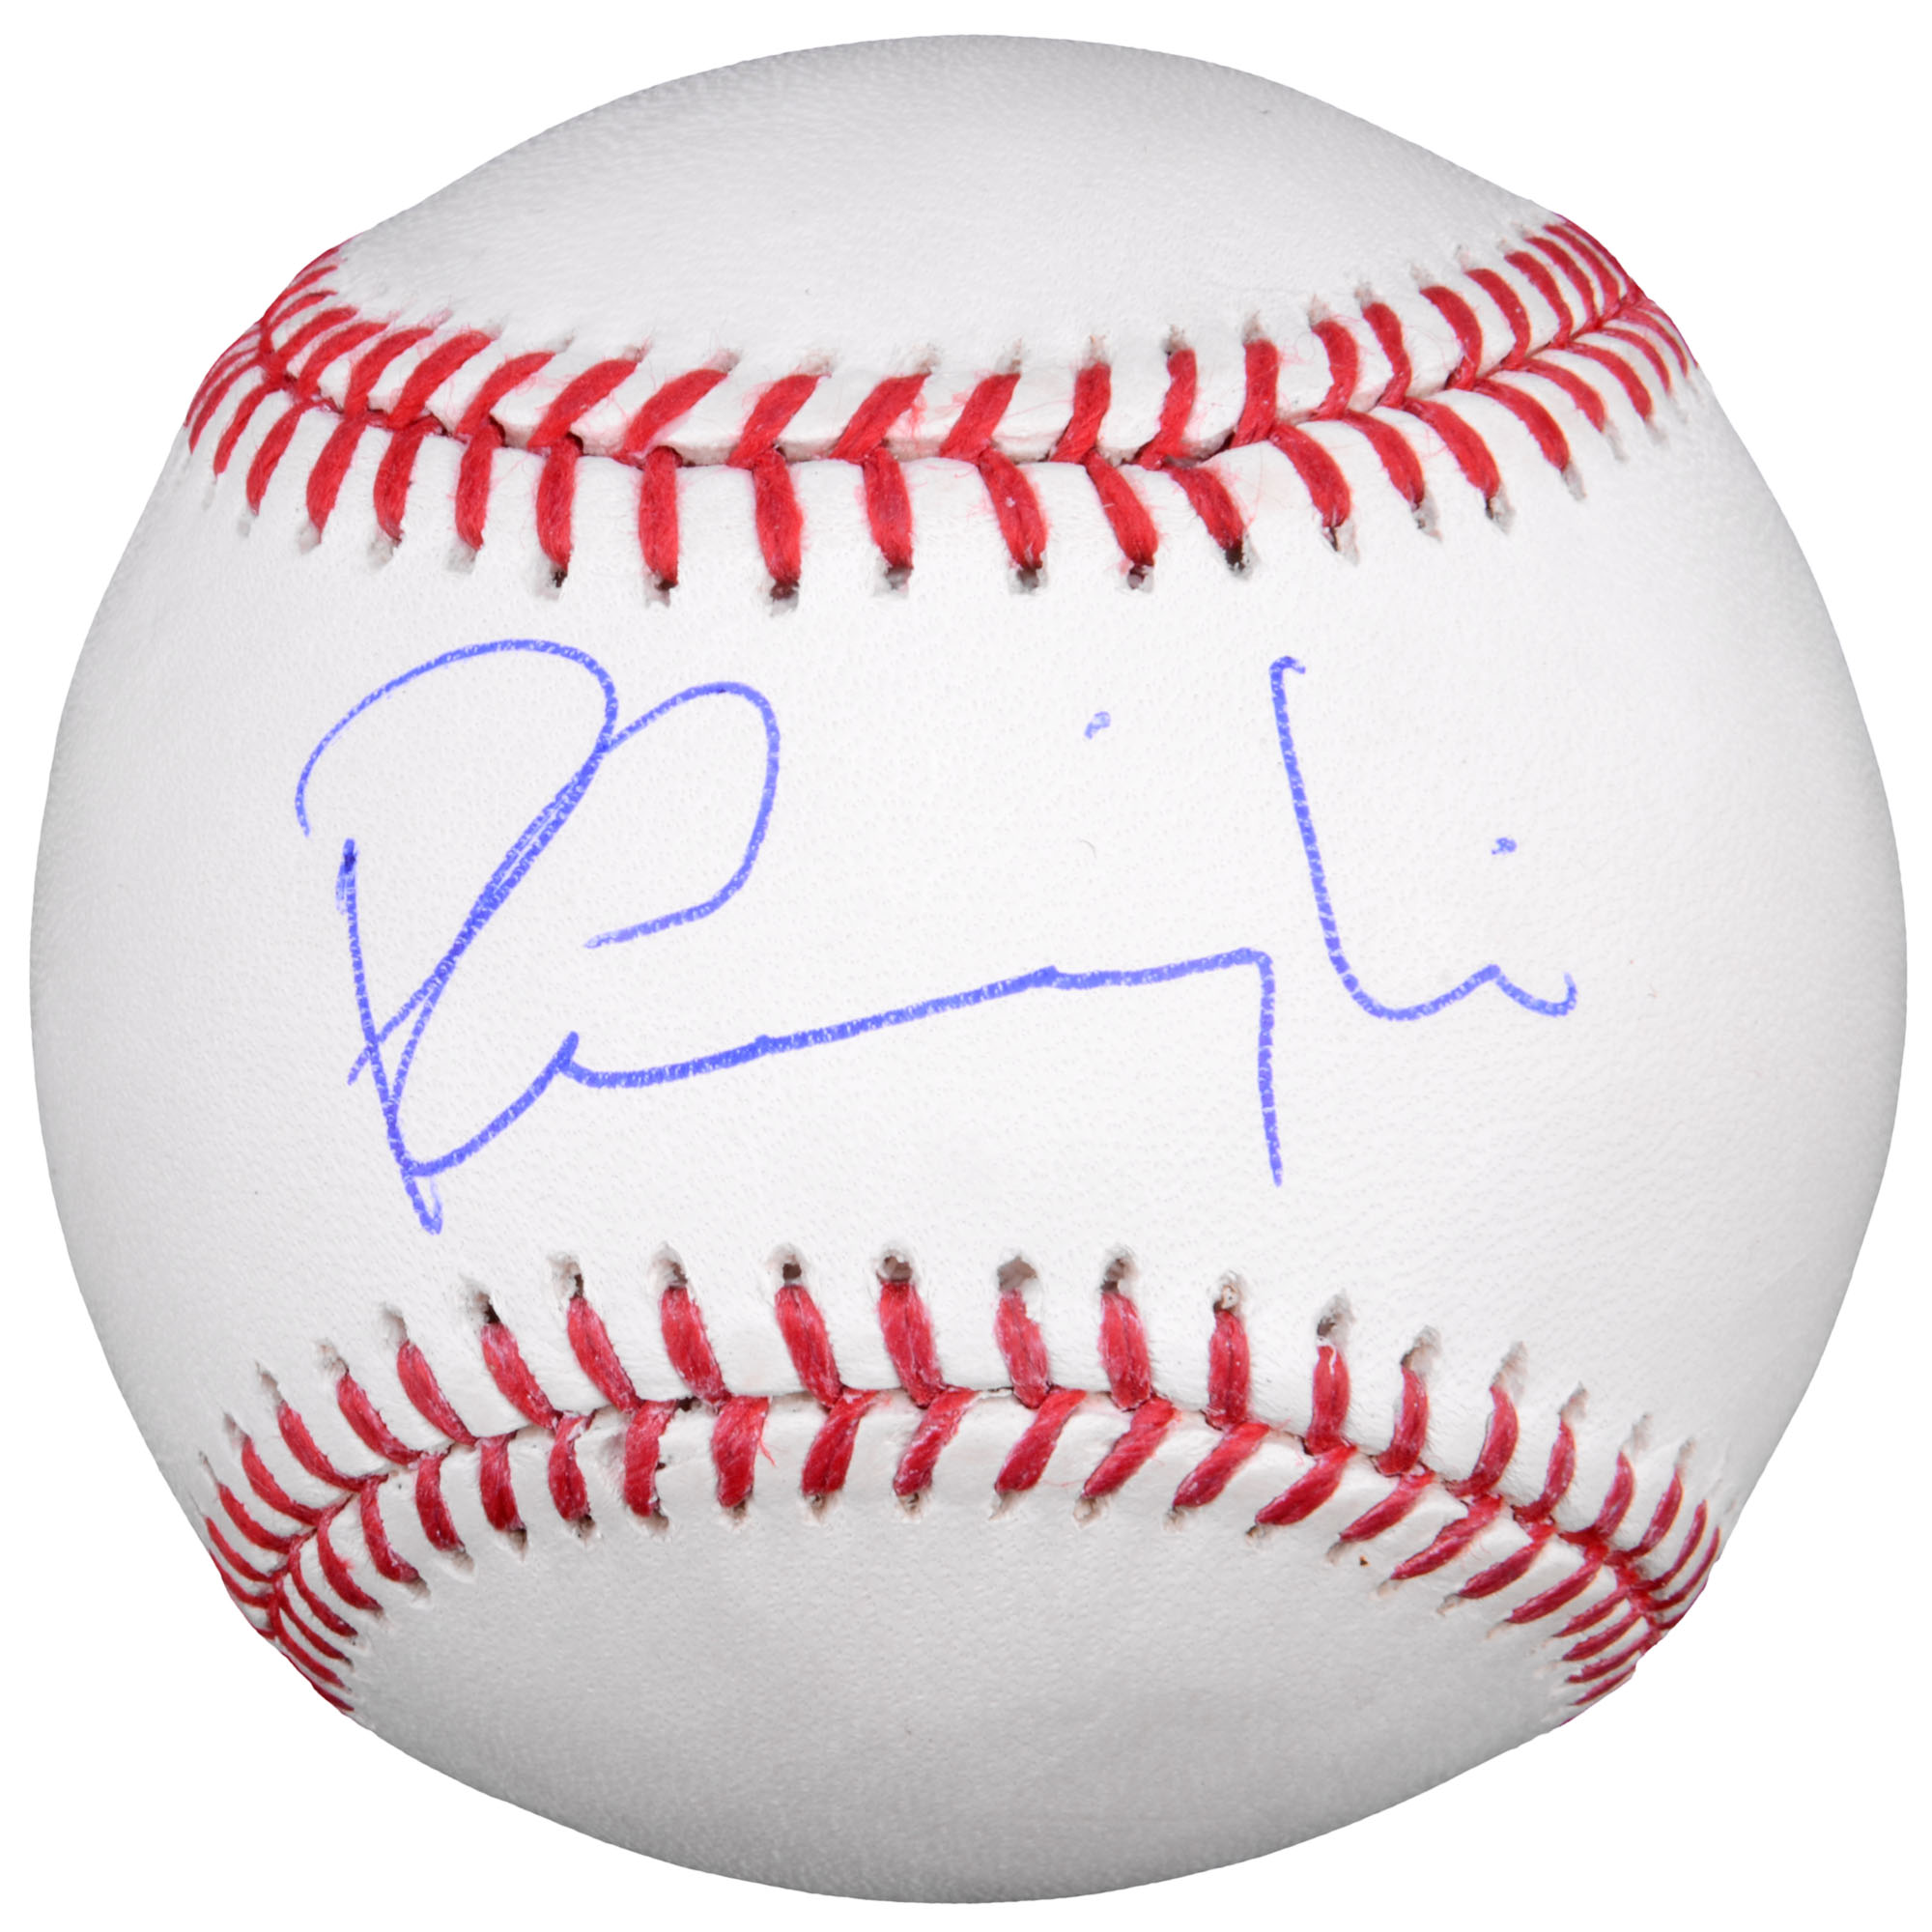 Pete Incaviglia Philadelphia Phillies Fanatics Authentic Autographed Baseball - No Size